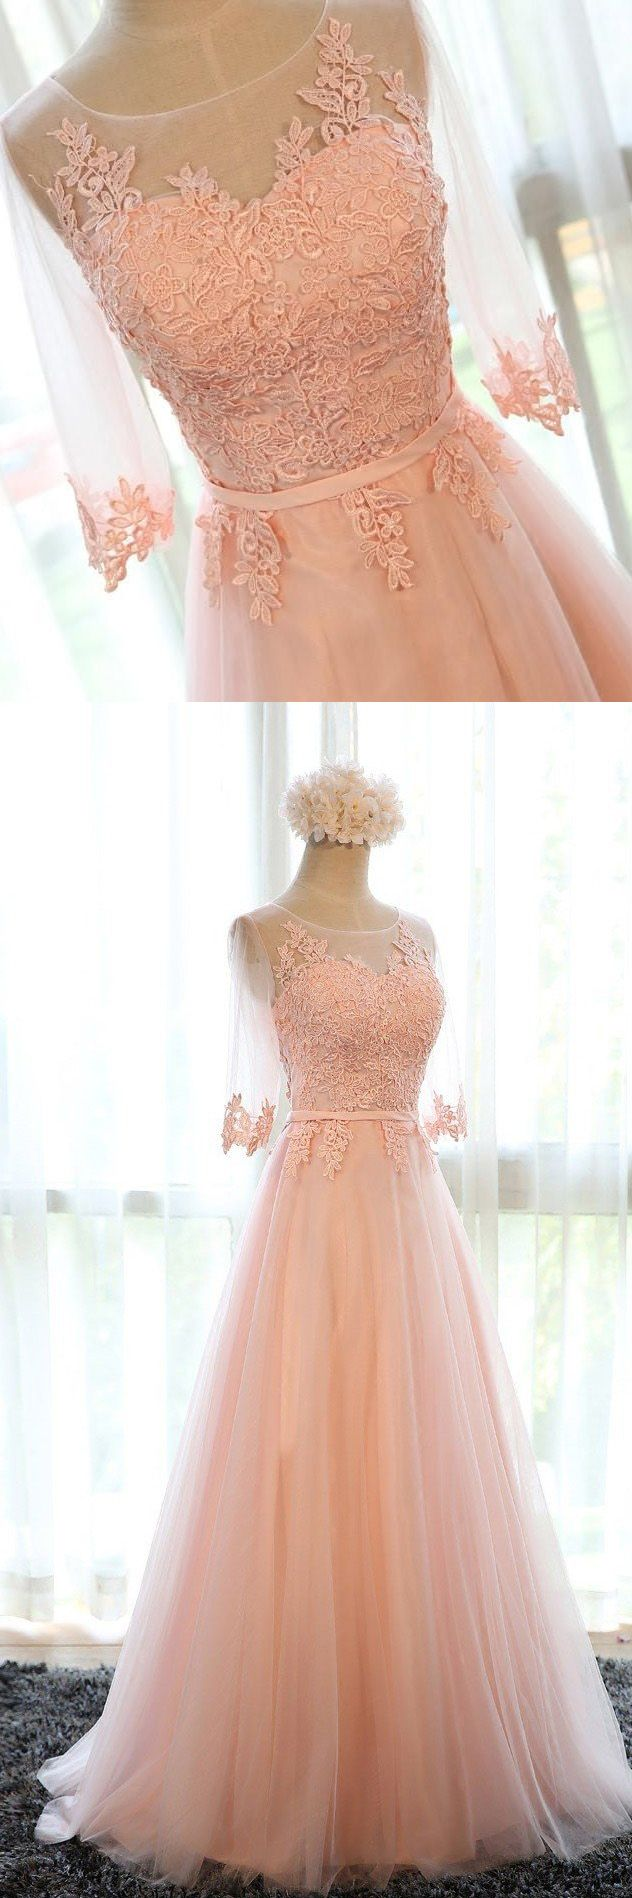 Customized sleeveless dresses long pink prom evening dresses with